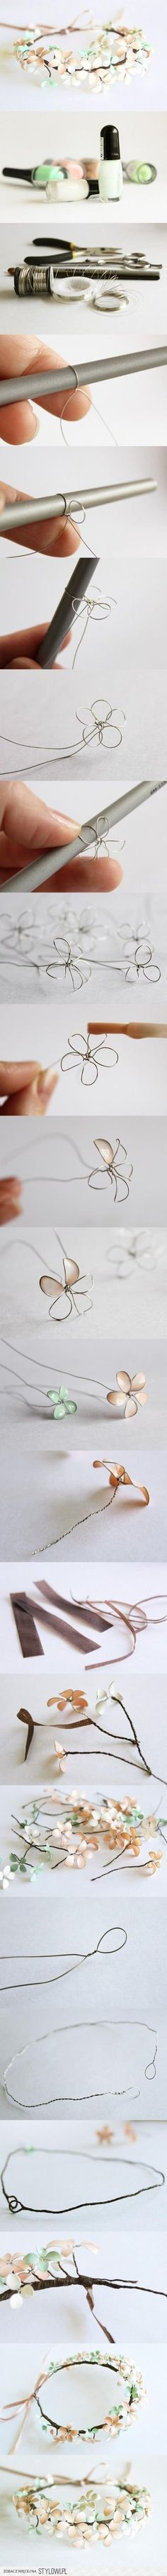 flowers made from thin wire and nail polish | She's cra… na Stylowi.pl